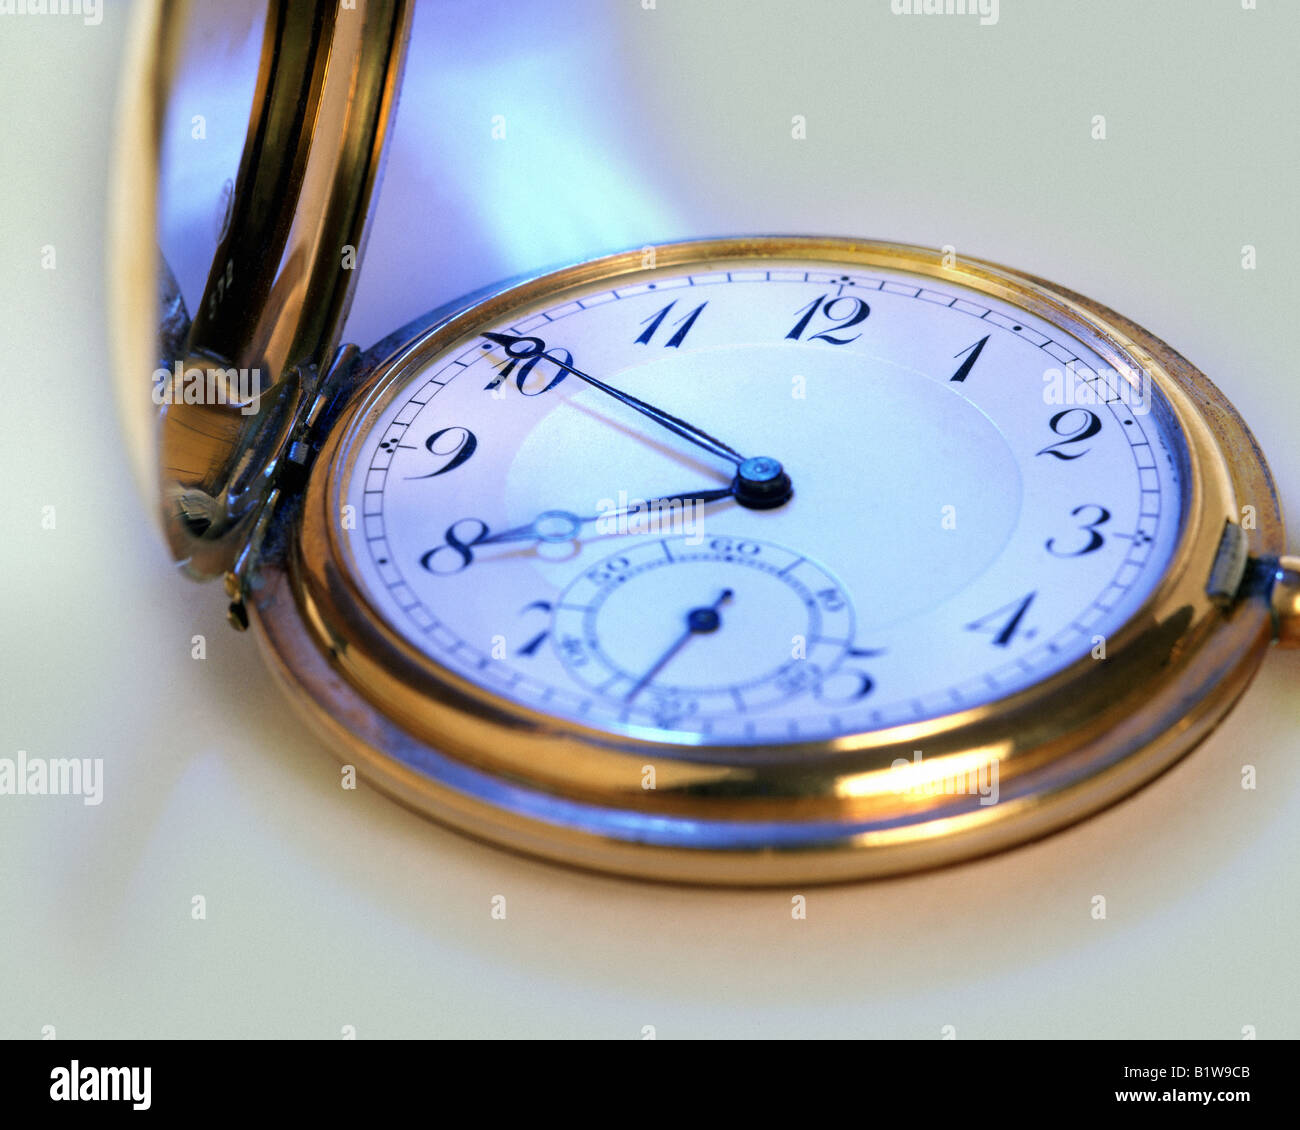 TIME CONCEPT: Golden Pocket Watch - Stock Image